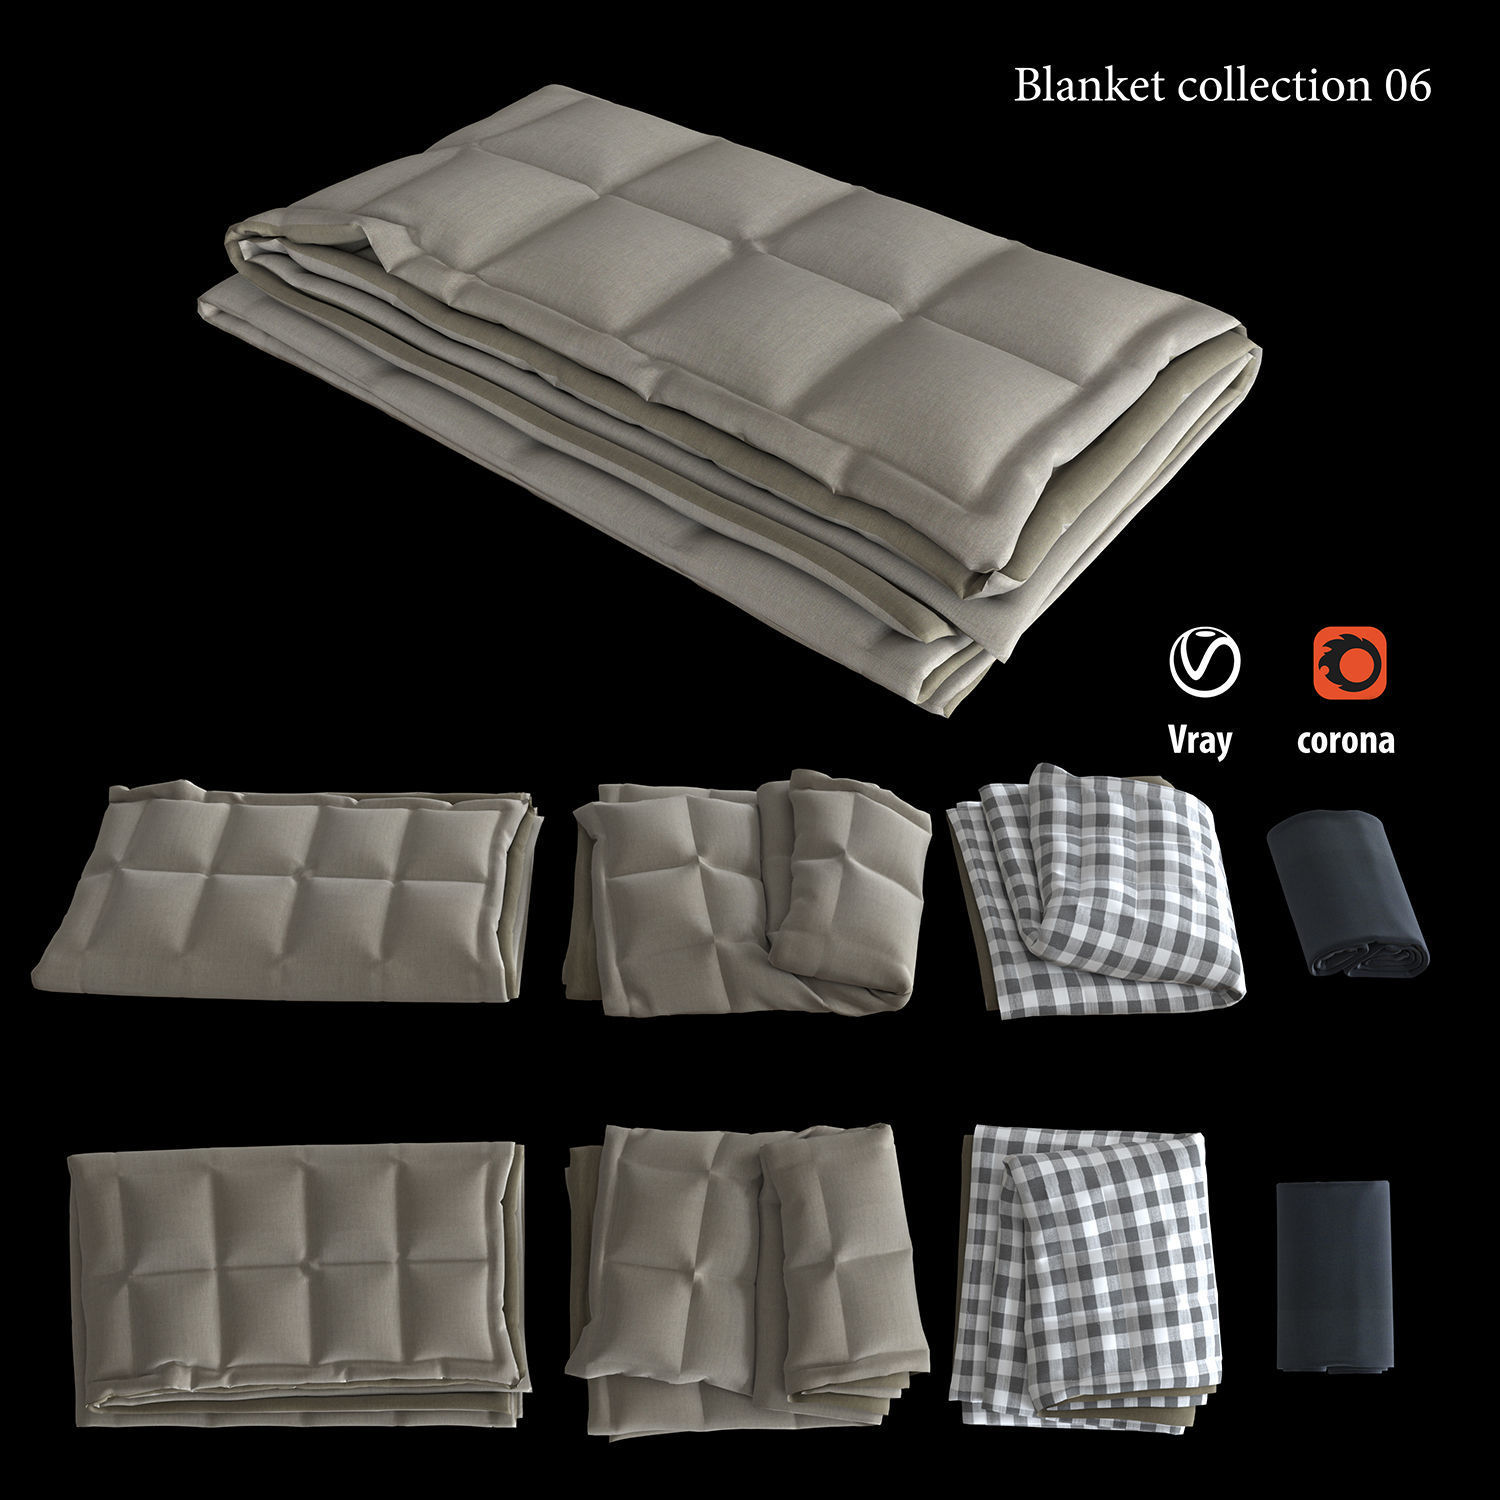 Blanket collection 06